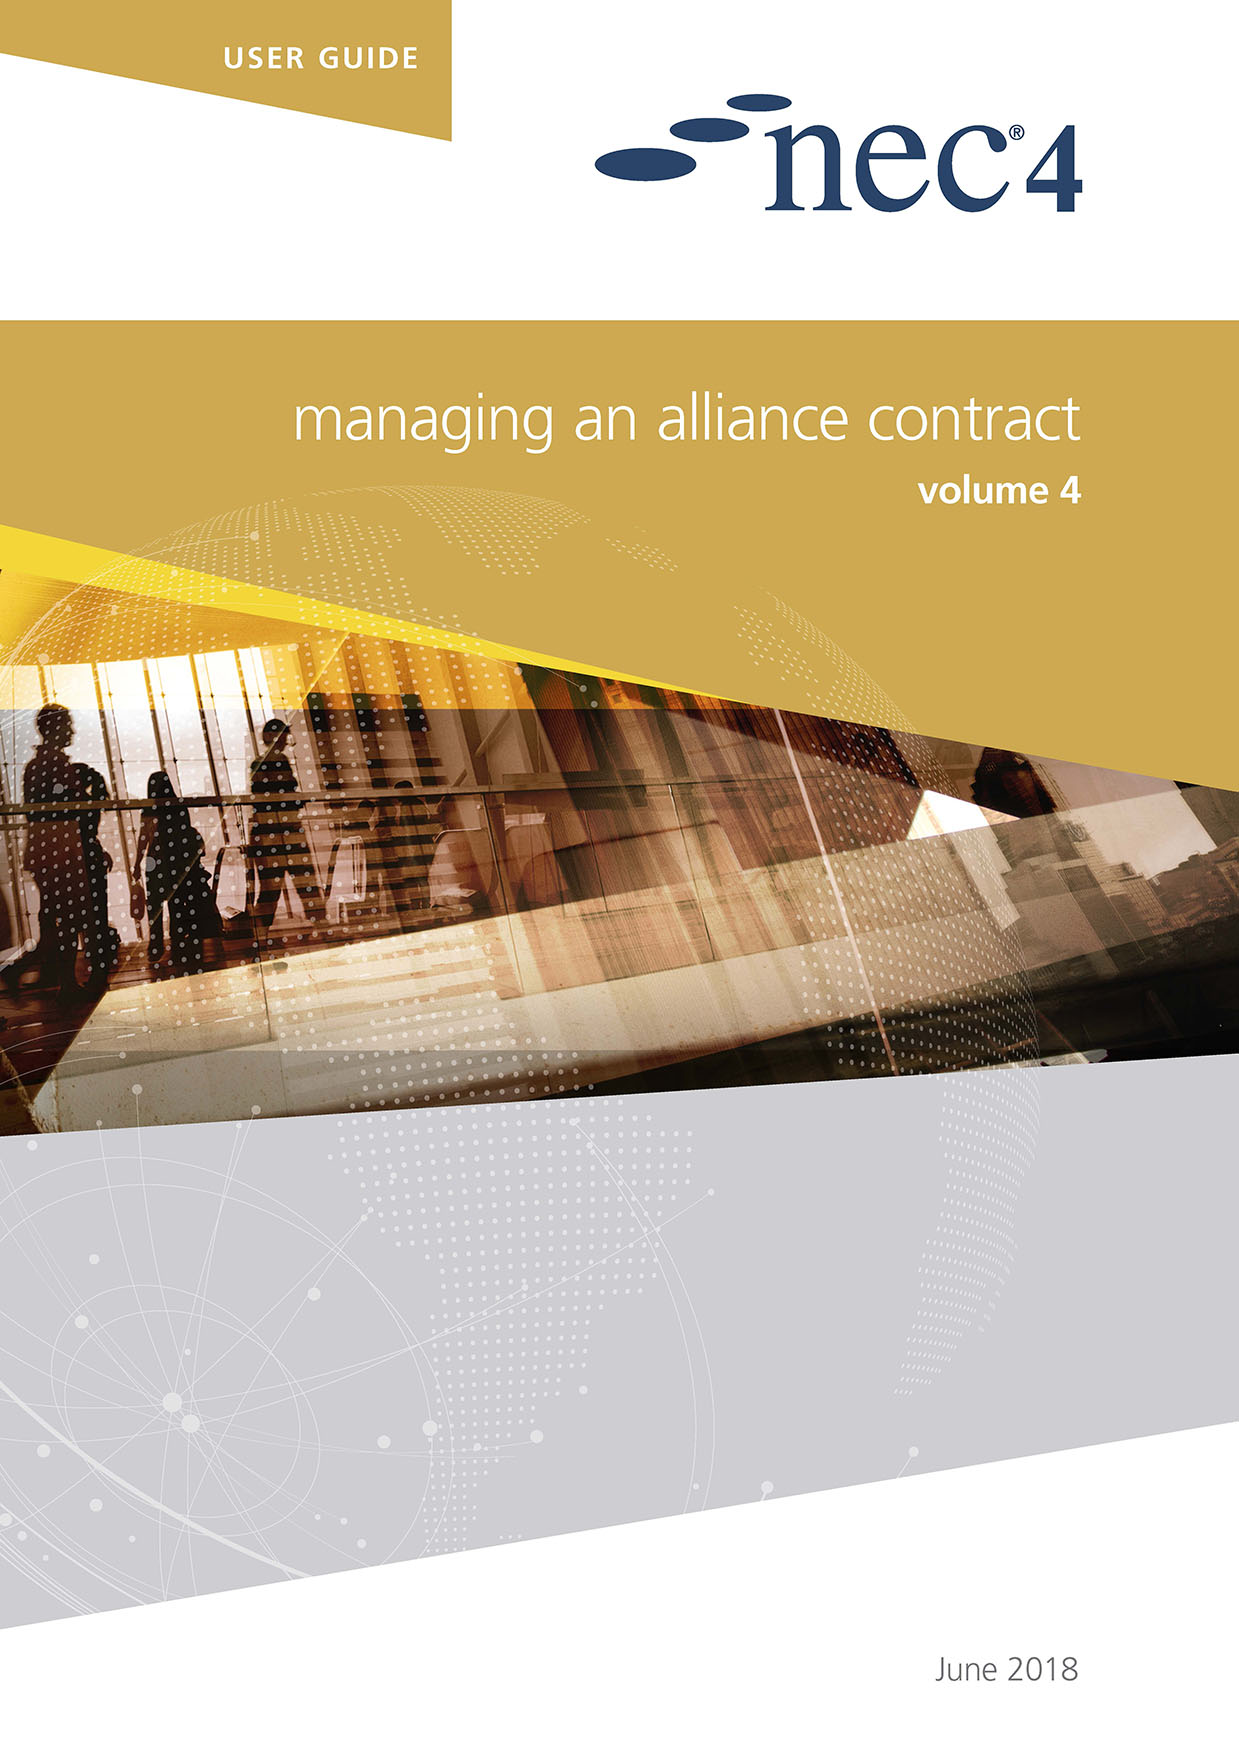 NEC4: Managing an Alliance Contract